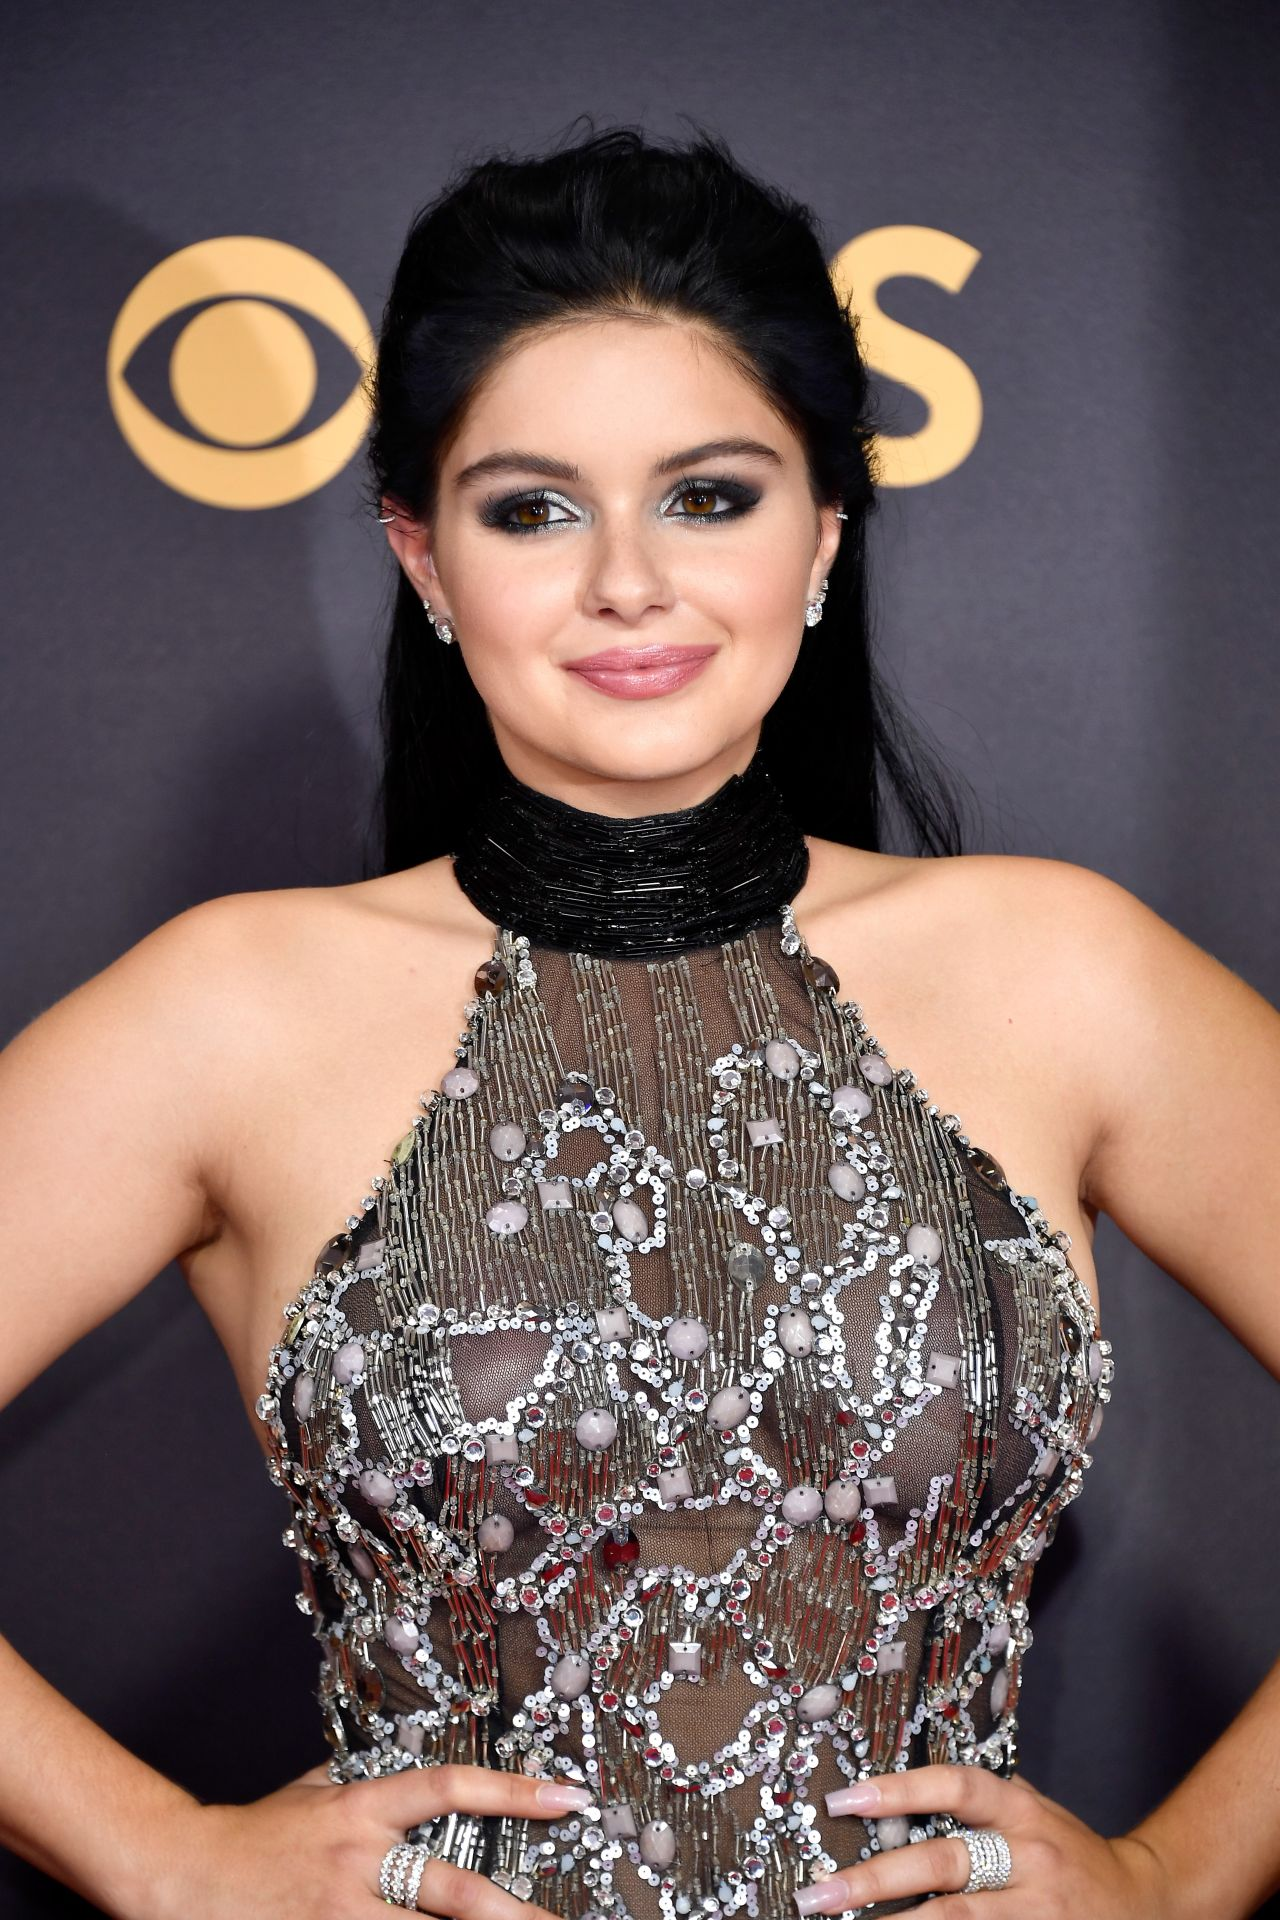 Ariel Winter Emmy Awards In Los Angeles 09 17 2017